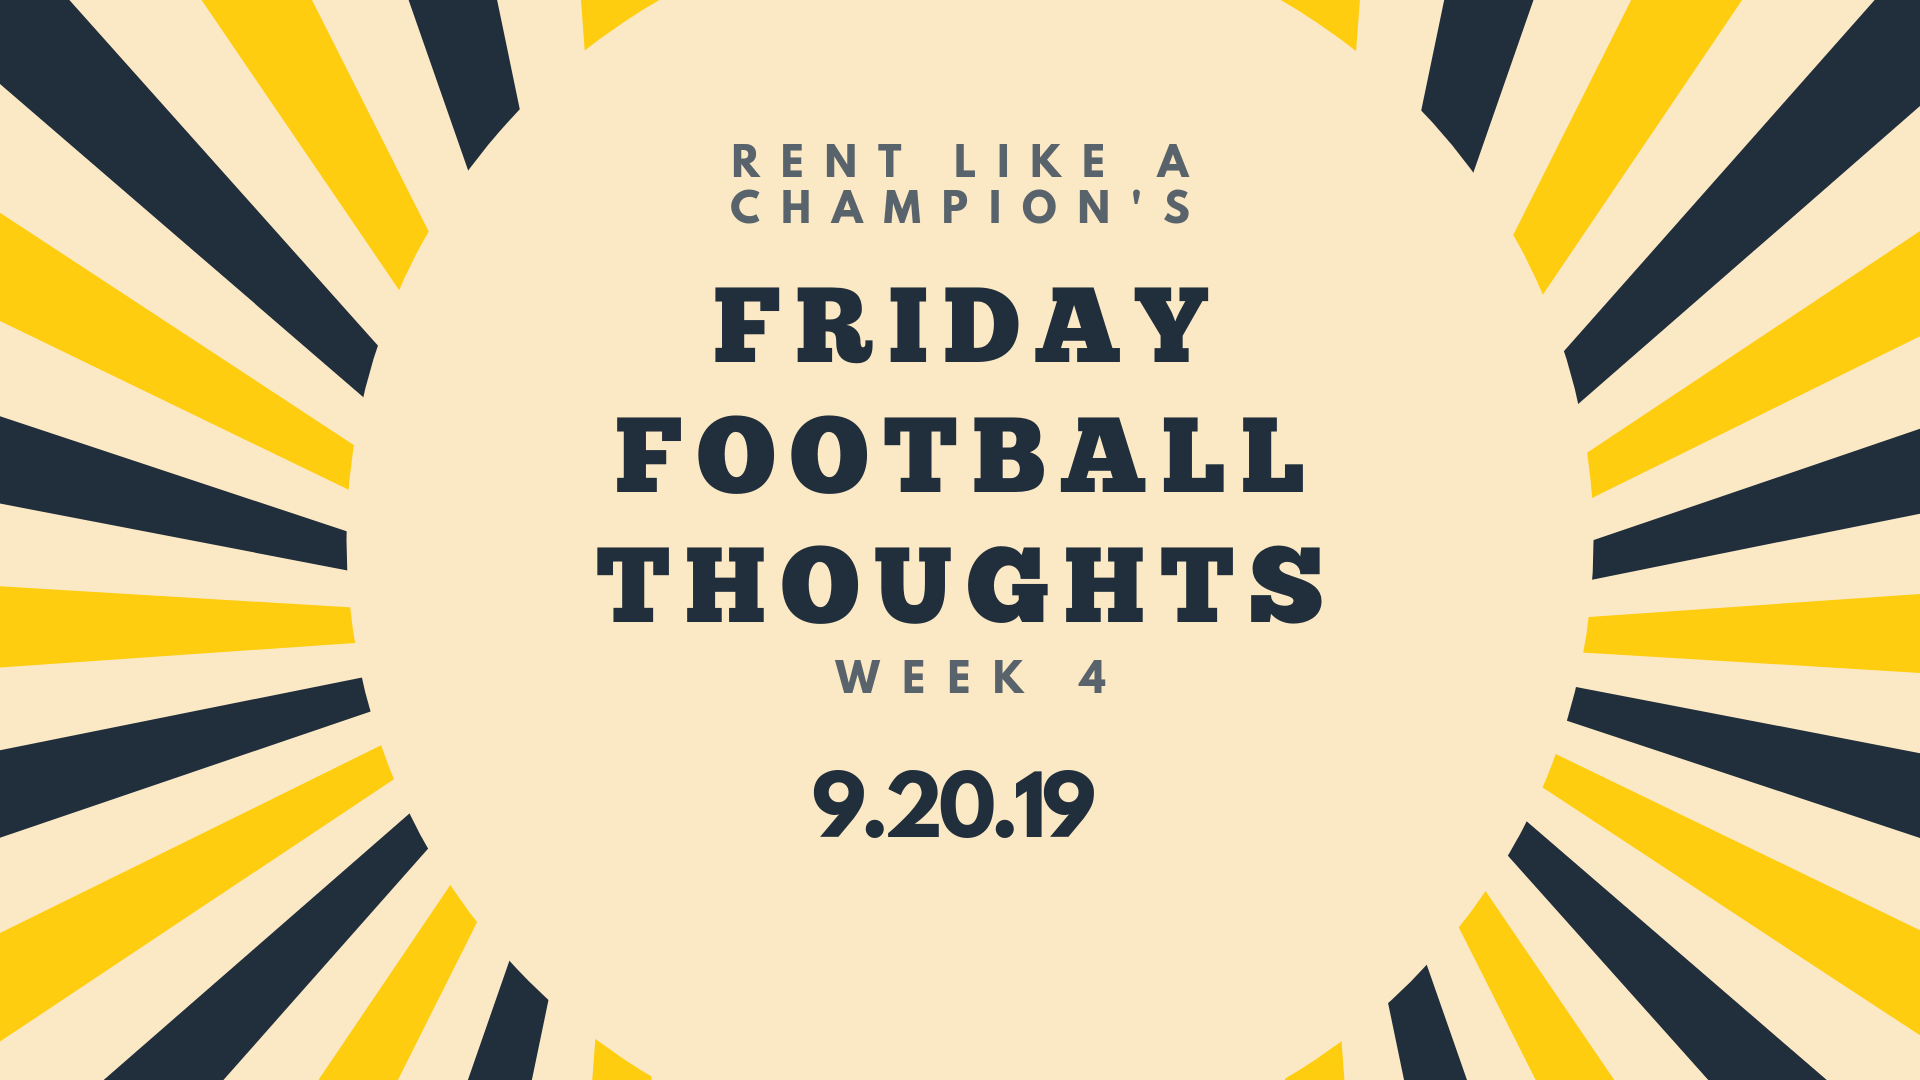 Friday Football Thoughts 9.20